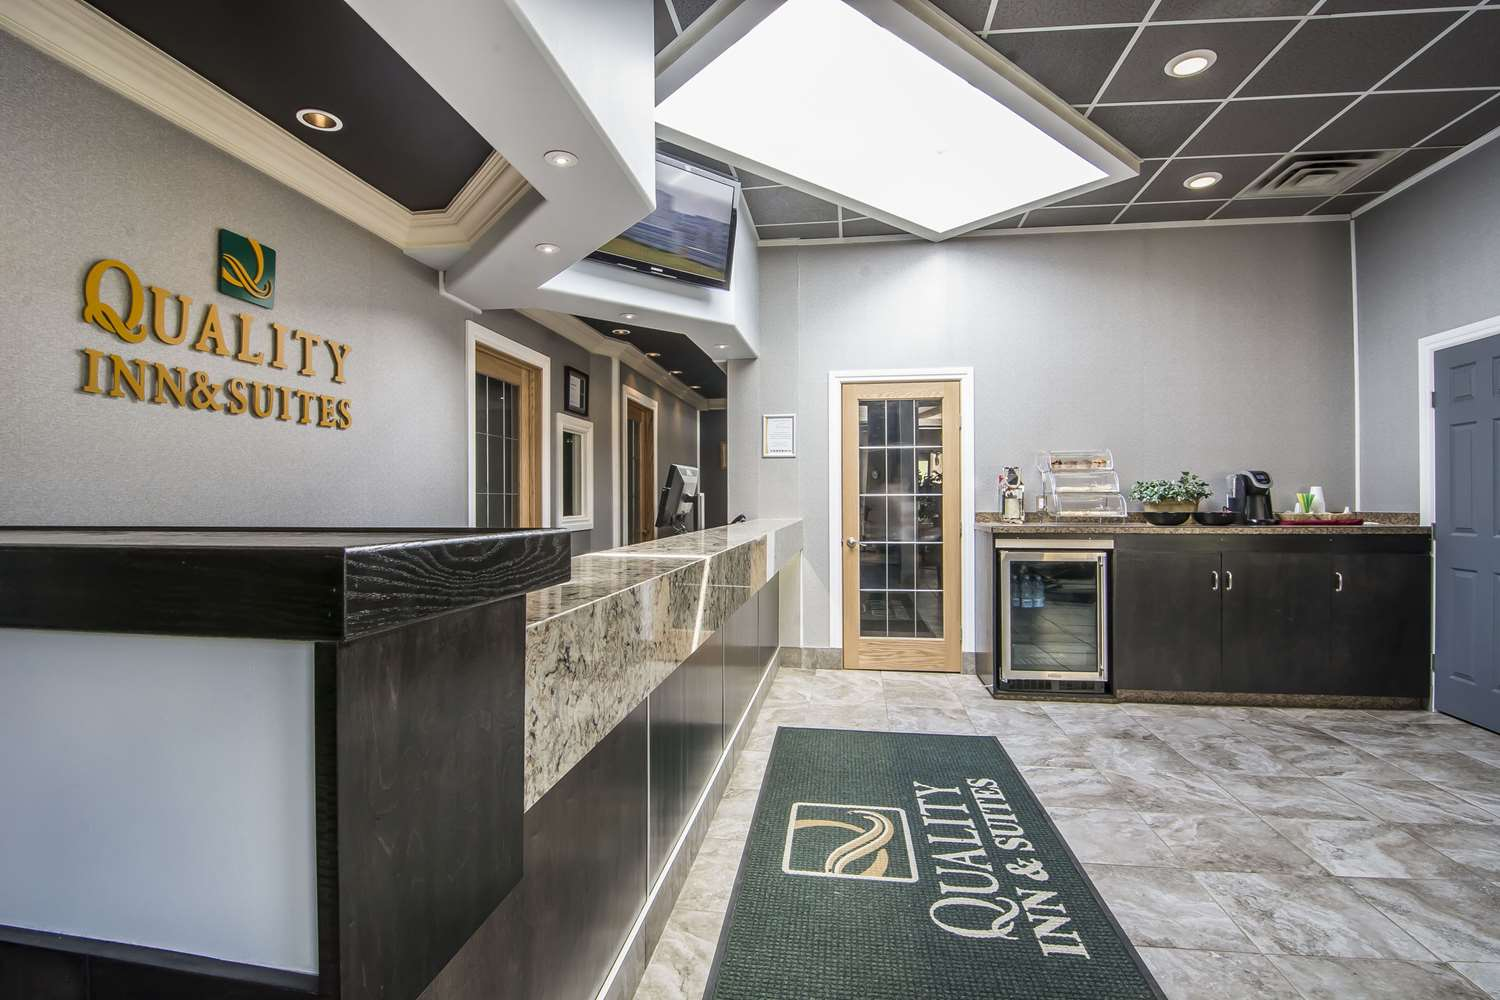 Lobby - Quality Inn & Suites High Level